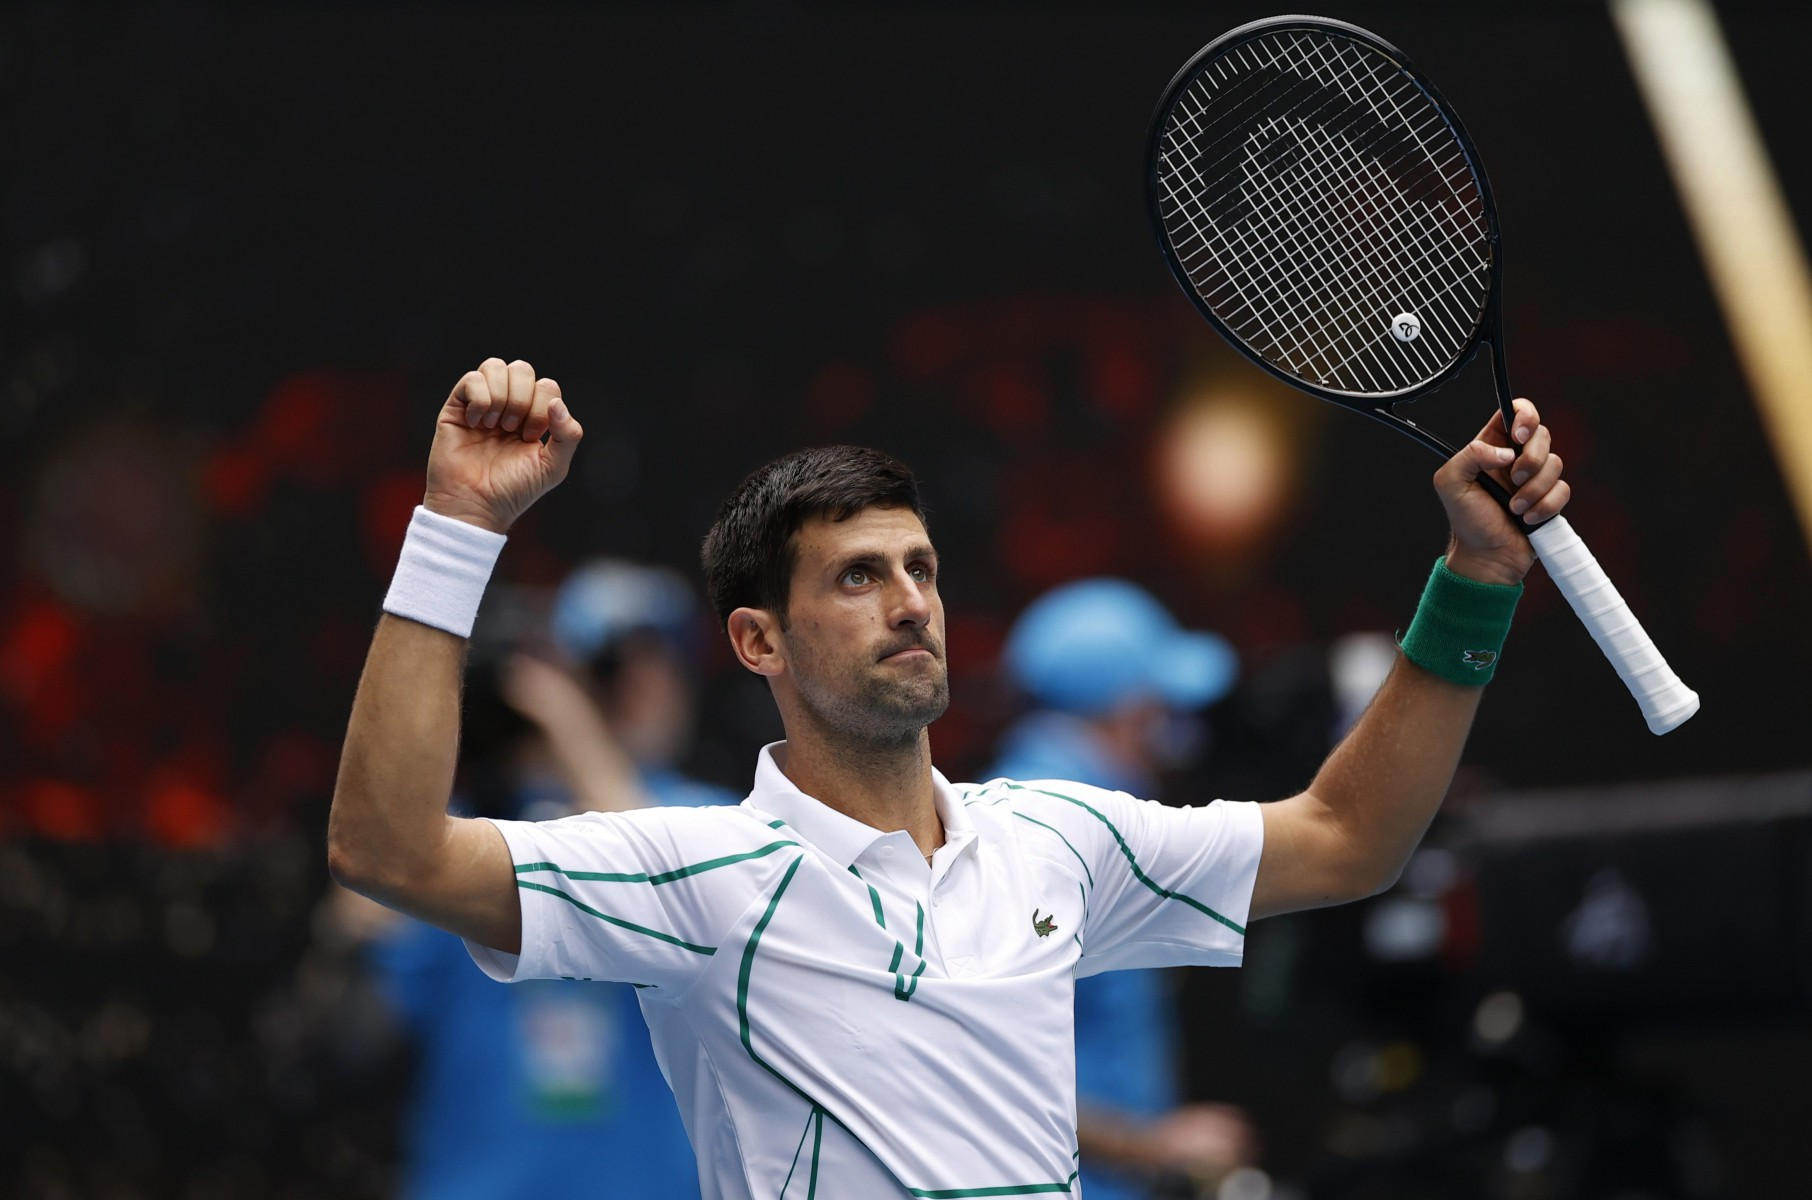 Djokovic Vs Raonic Free Live Stream Tv Channel And Start Time For Australian Open Quarter Final Clash Sporting Excitement